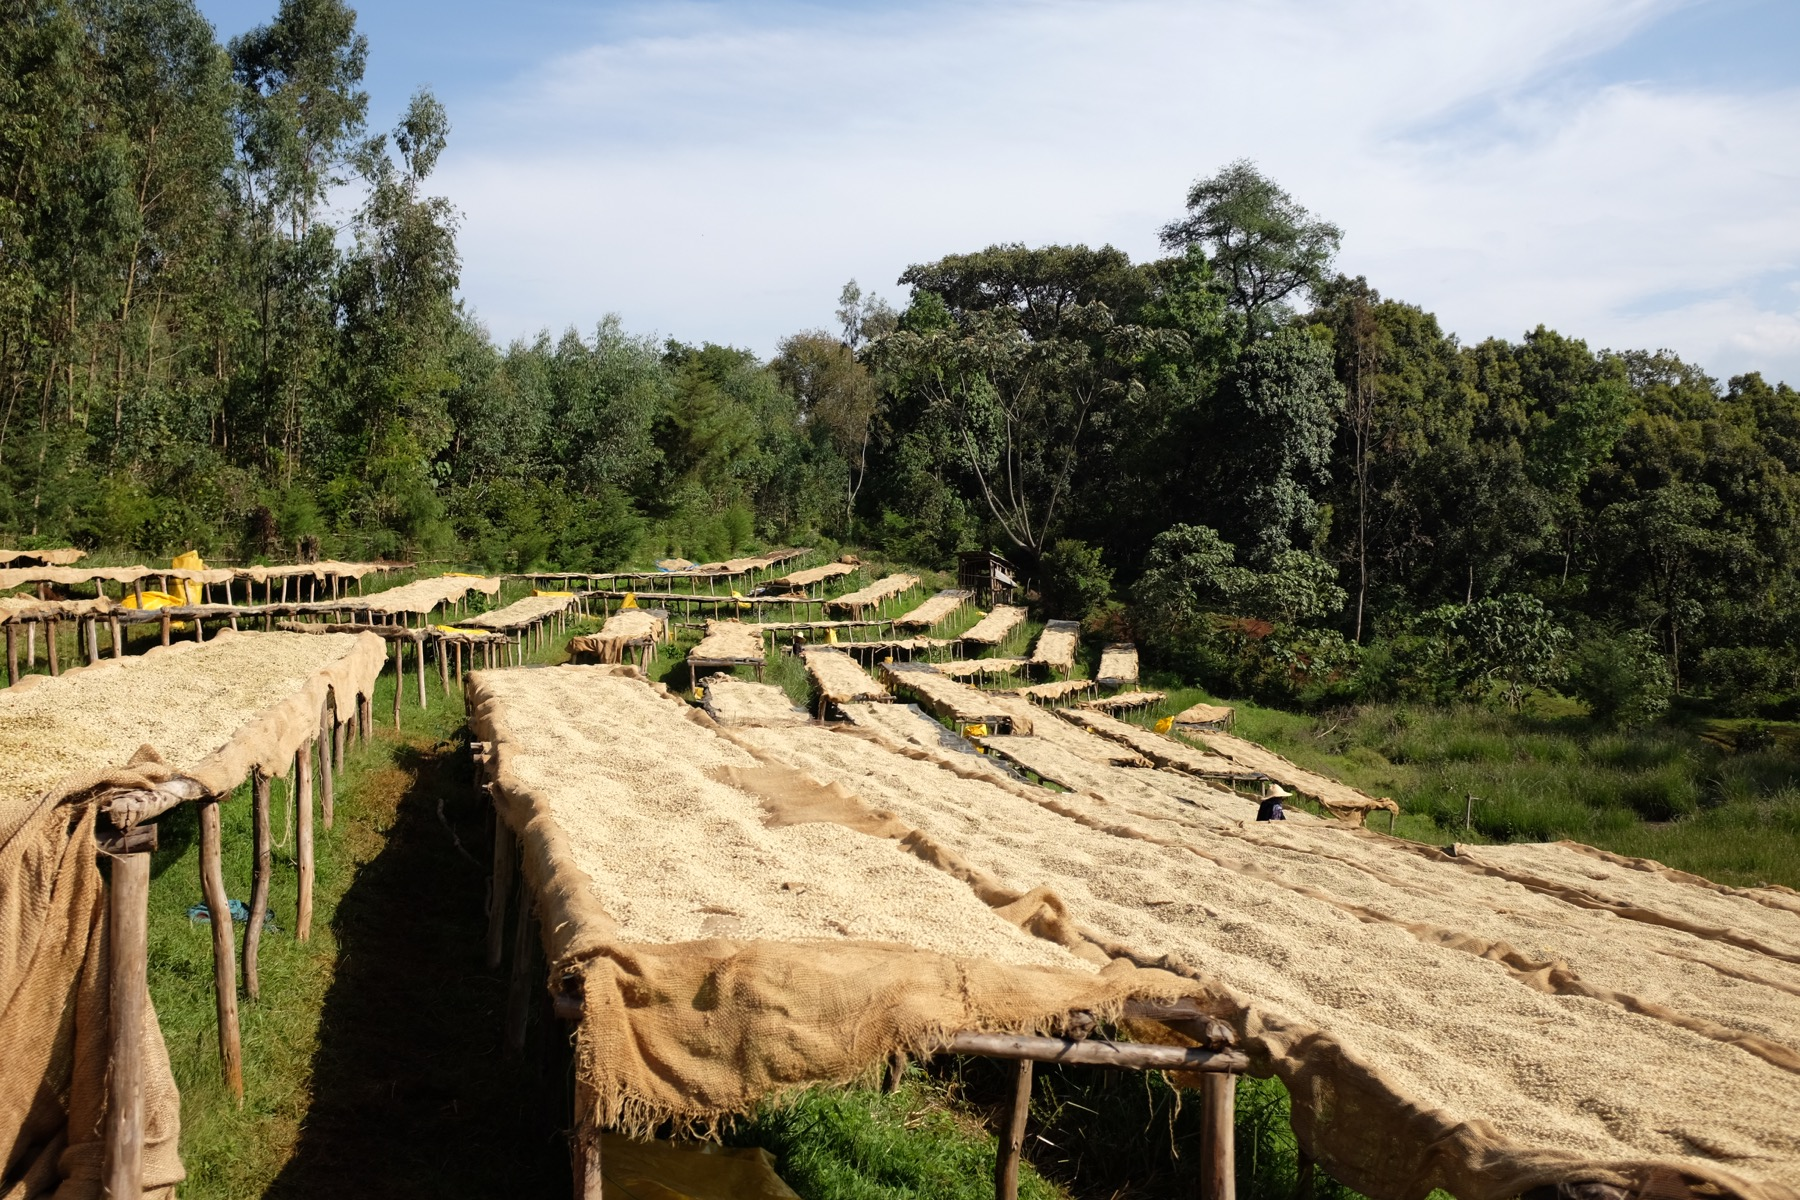 Drying Beds in Doyo, Äthiopien